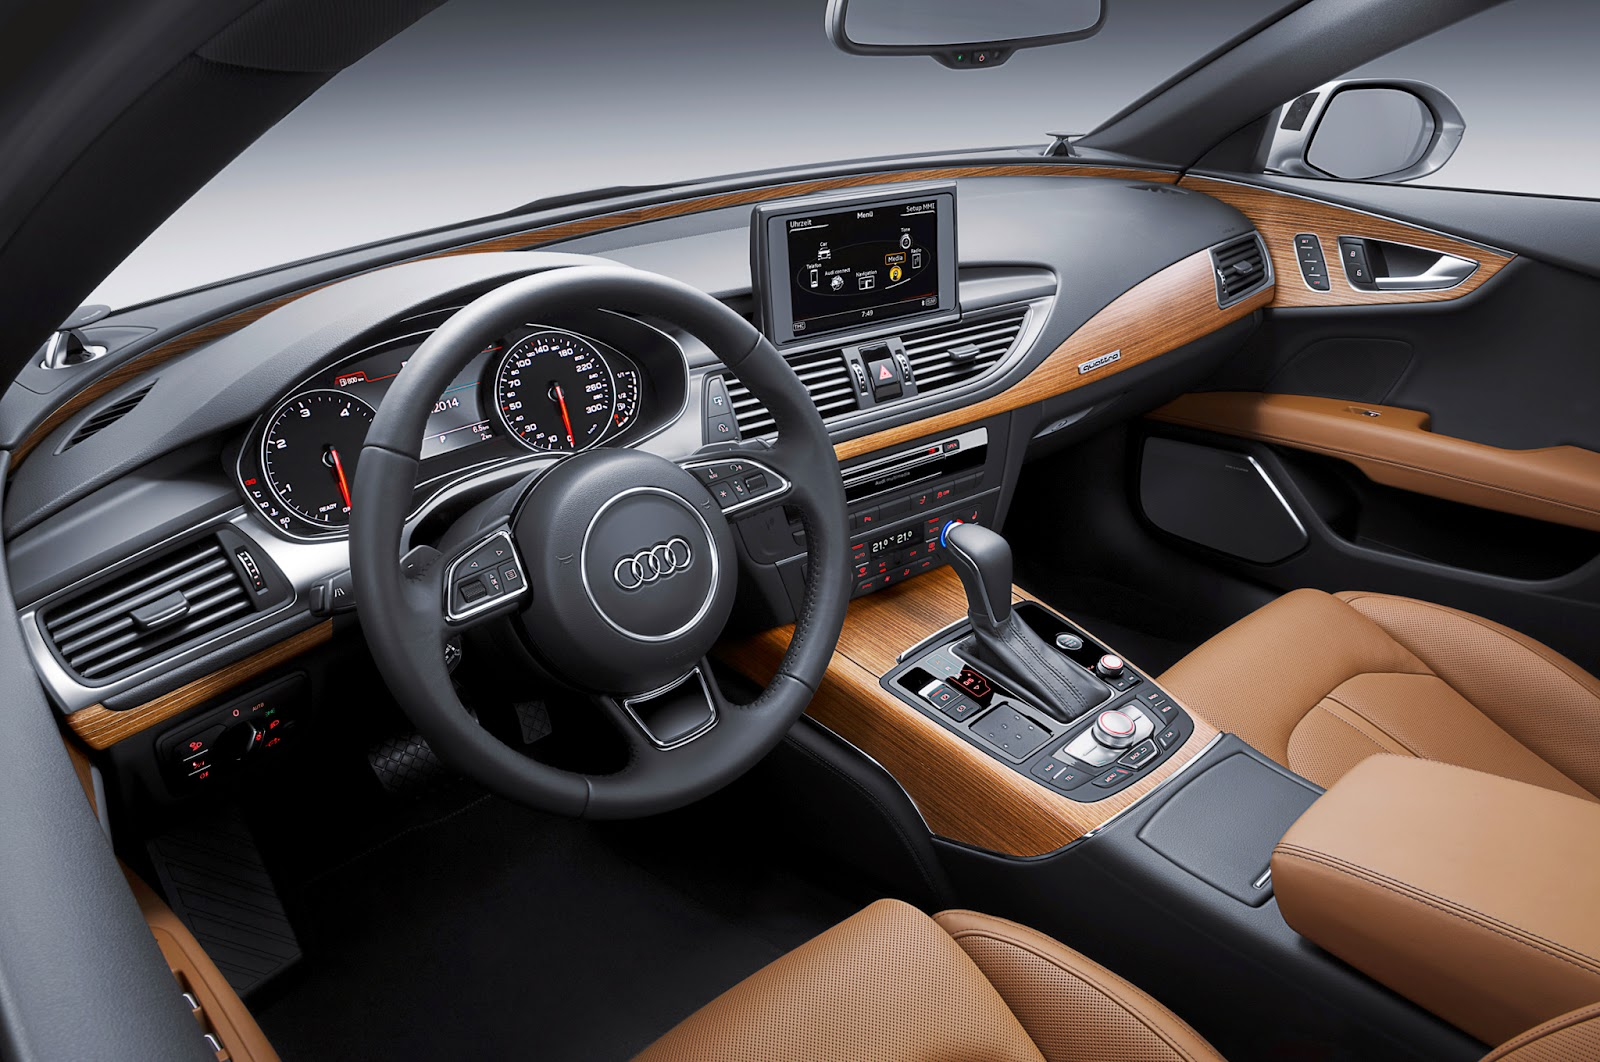 2015 Audi A7 Review, Specs, Features and Performance